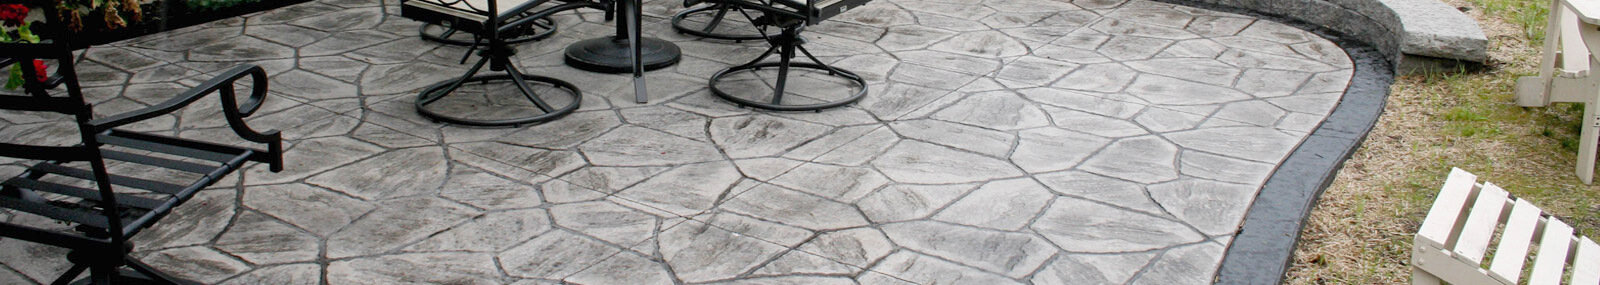 Stamped Concrete Patio Rochester Sidewalks Driveways